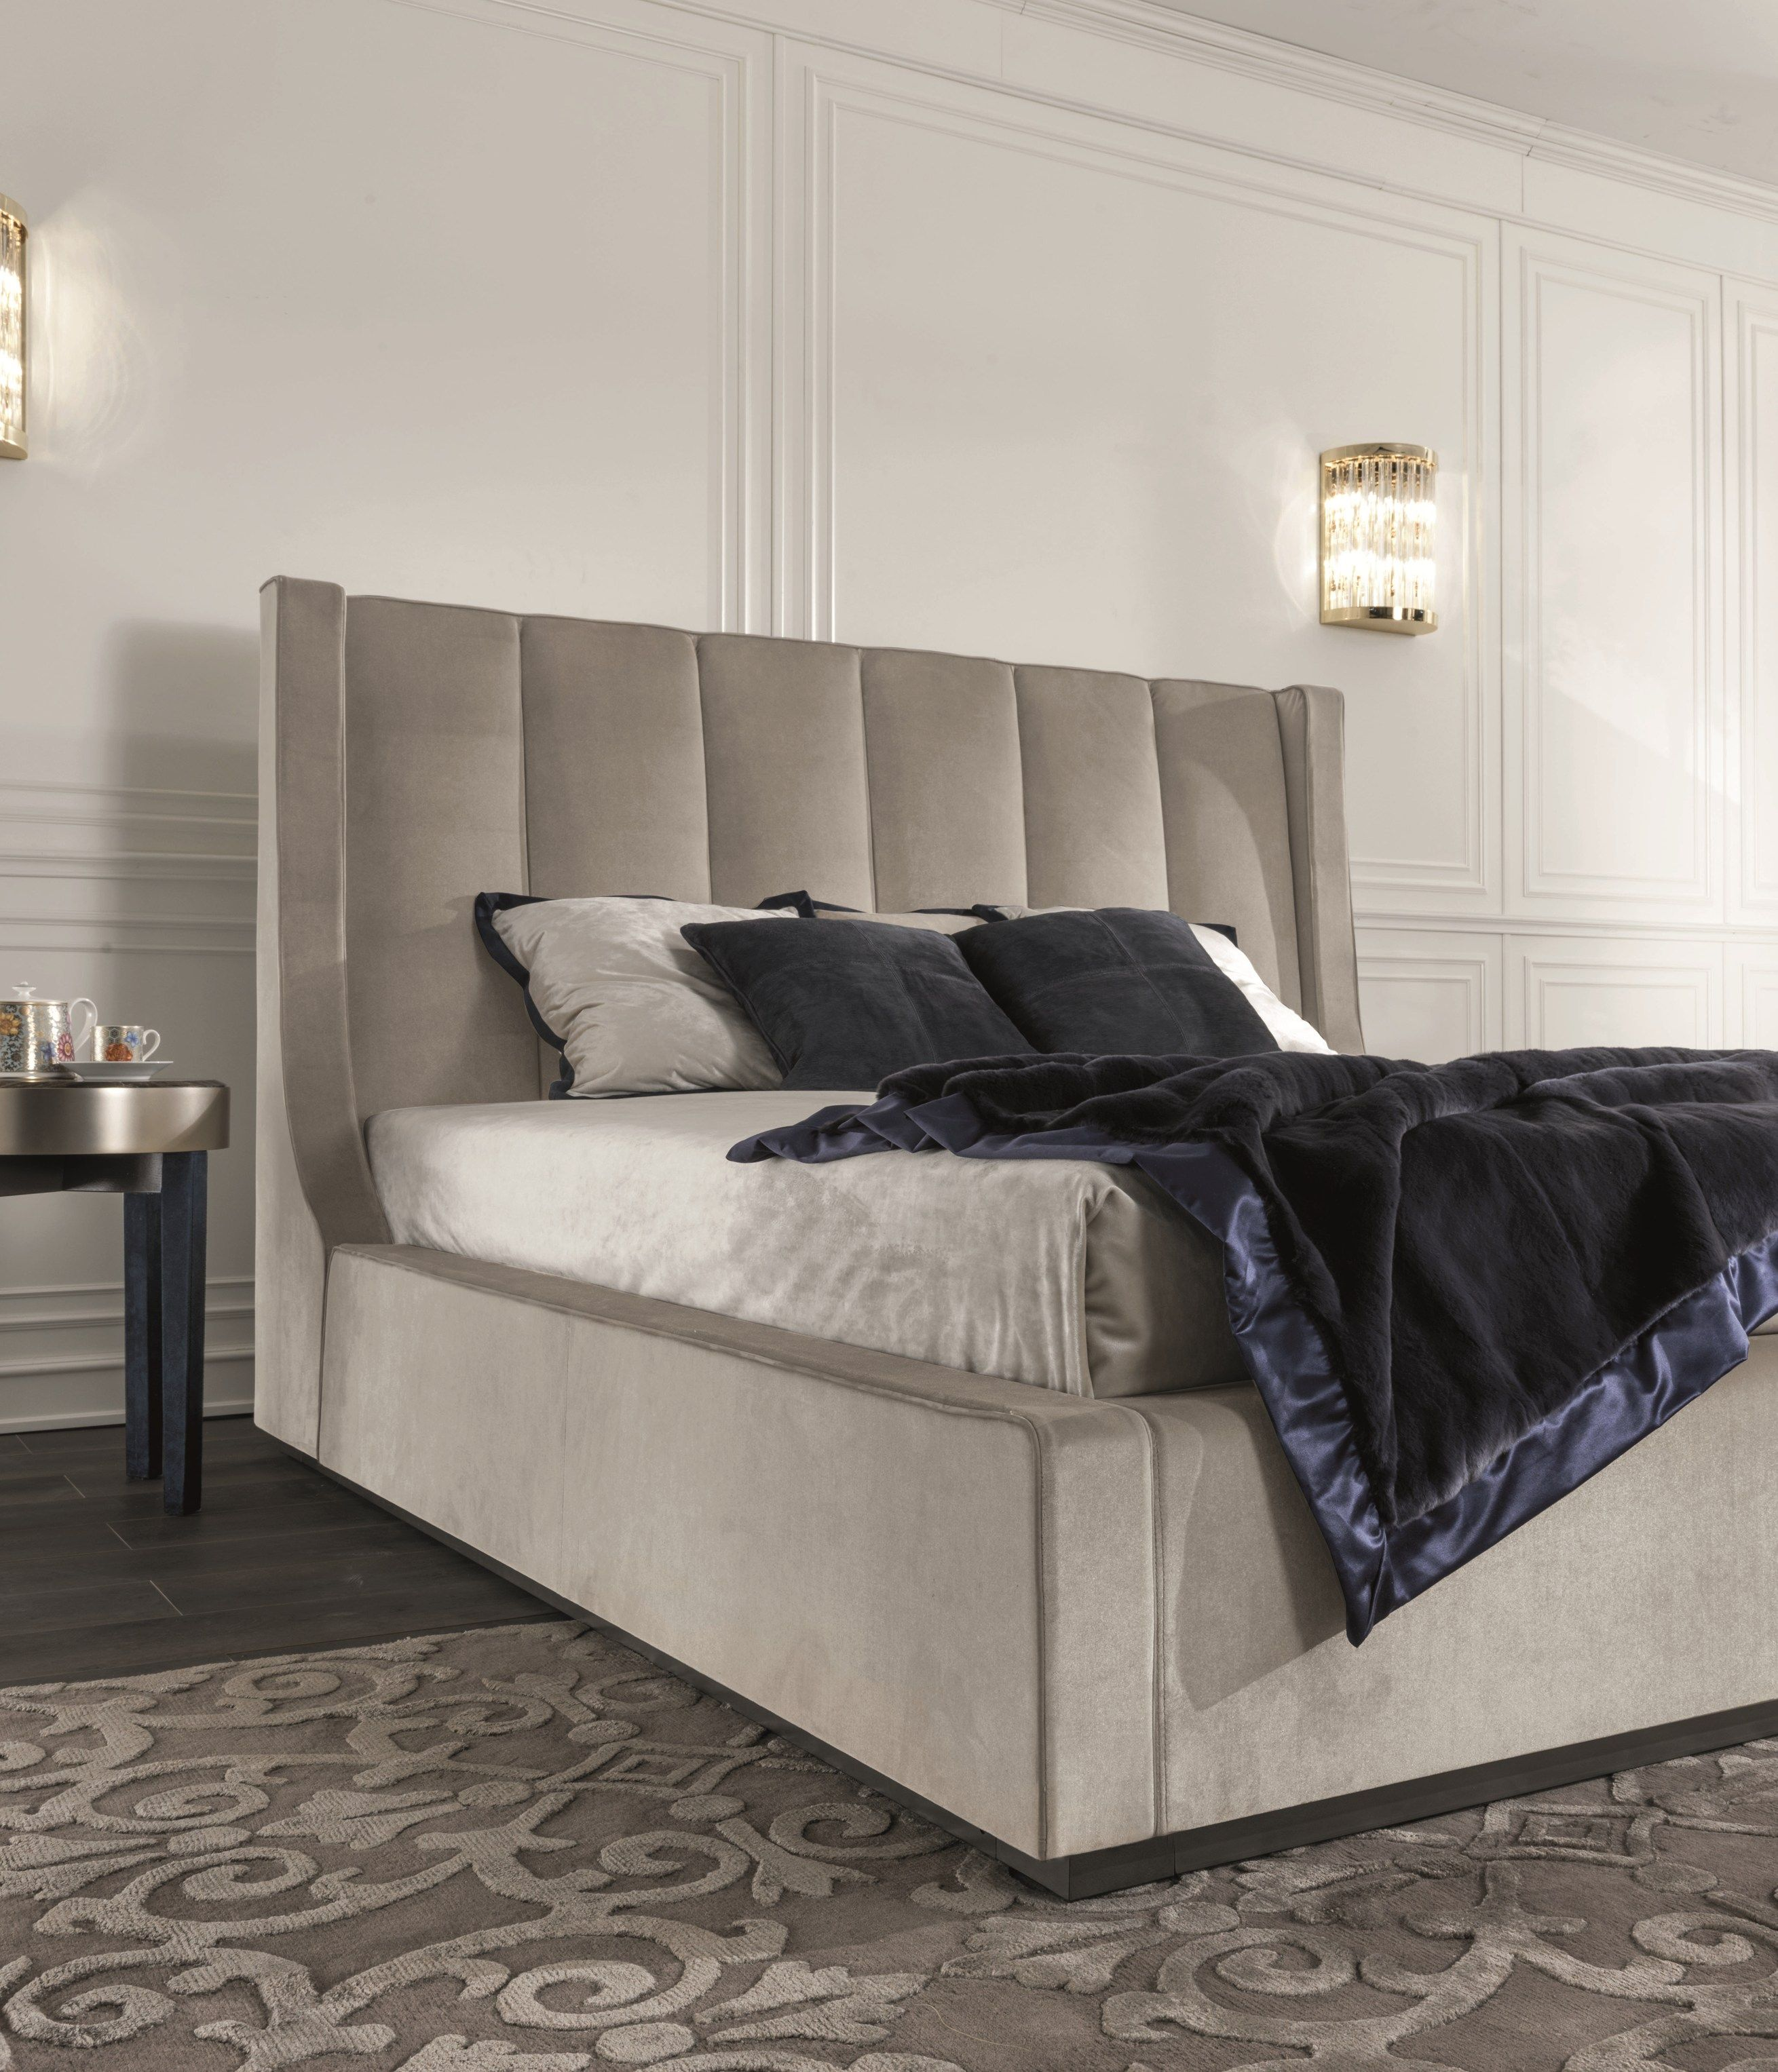 Storage bed with upholstered headboard KUBRICK by Longhi